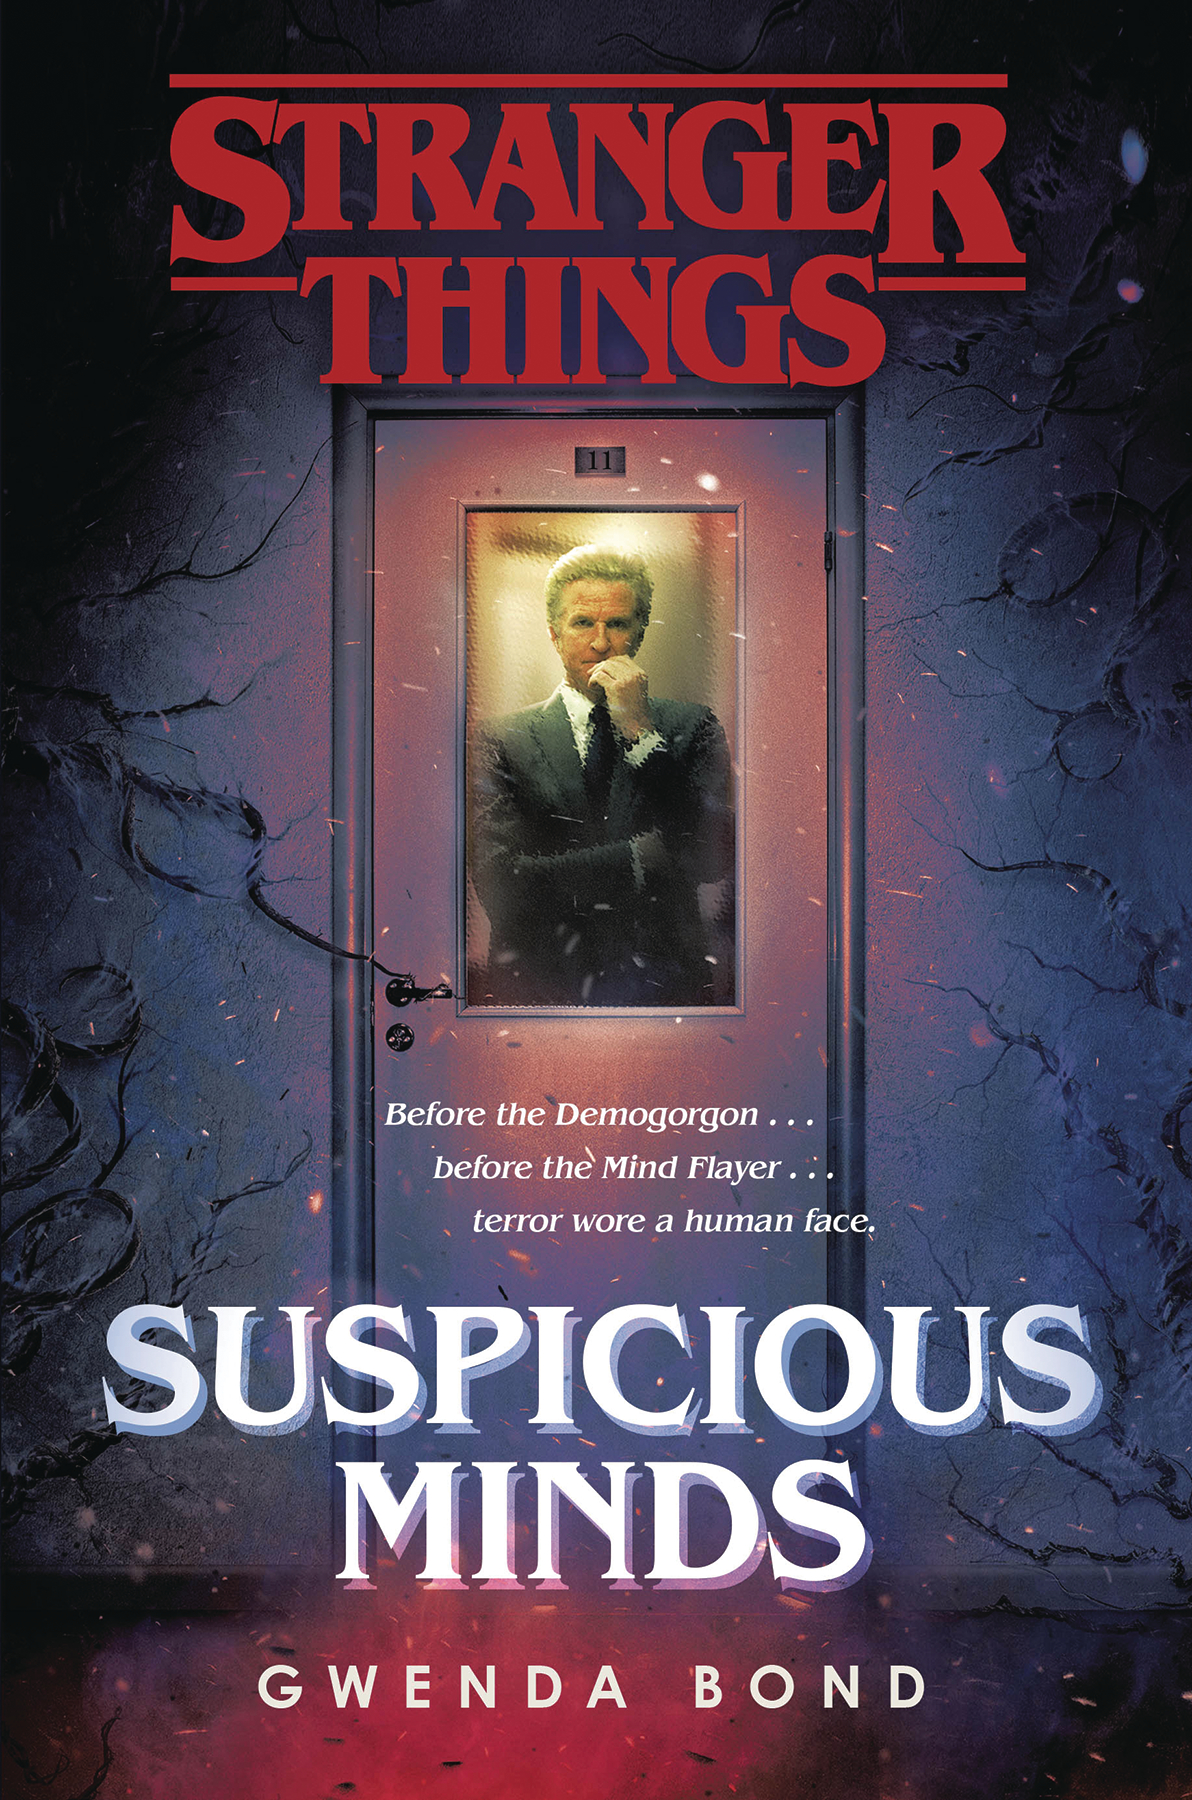 STRANGER THINGS HC NOVEL SUSPICIOUS MINDS